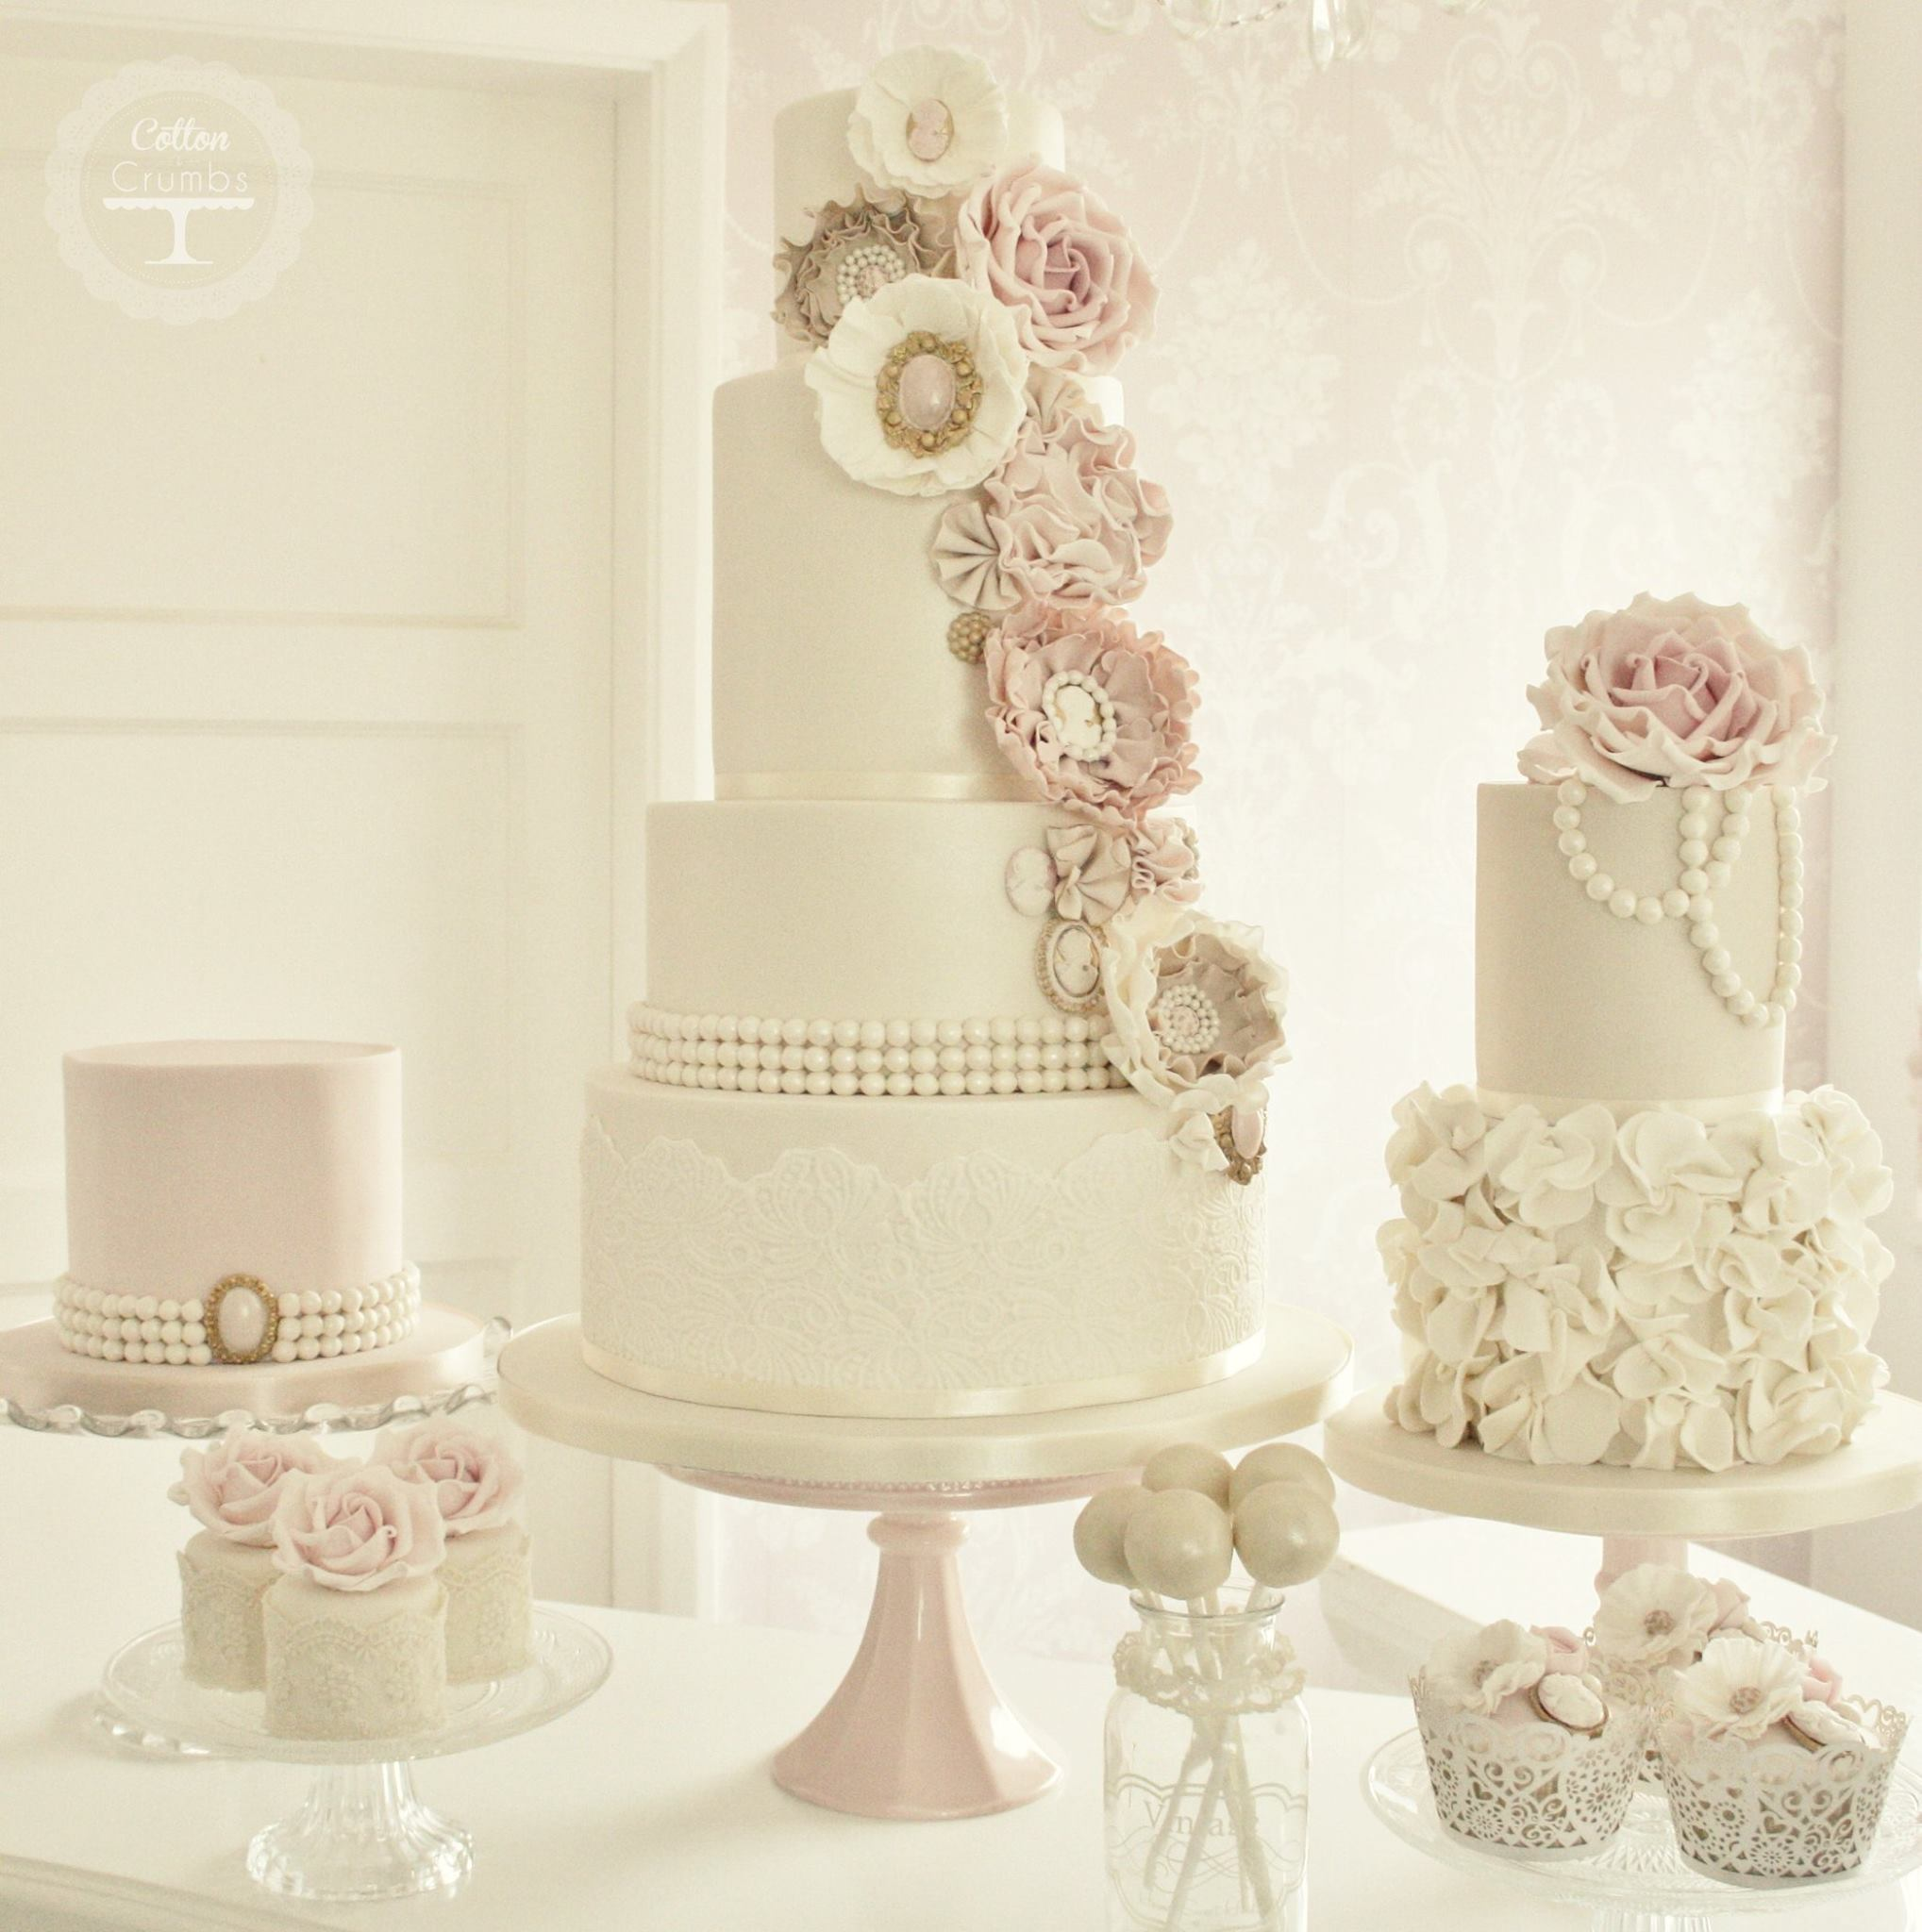 Wedding Cakes With Exceptional Details